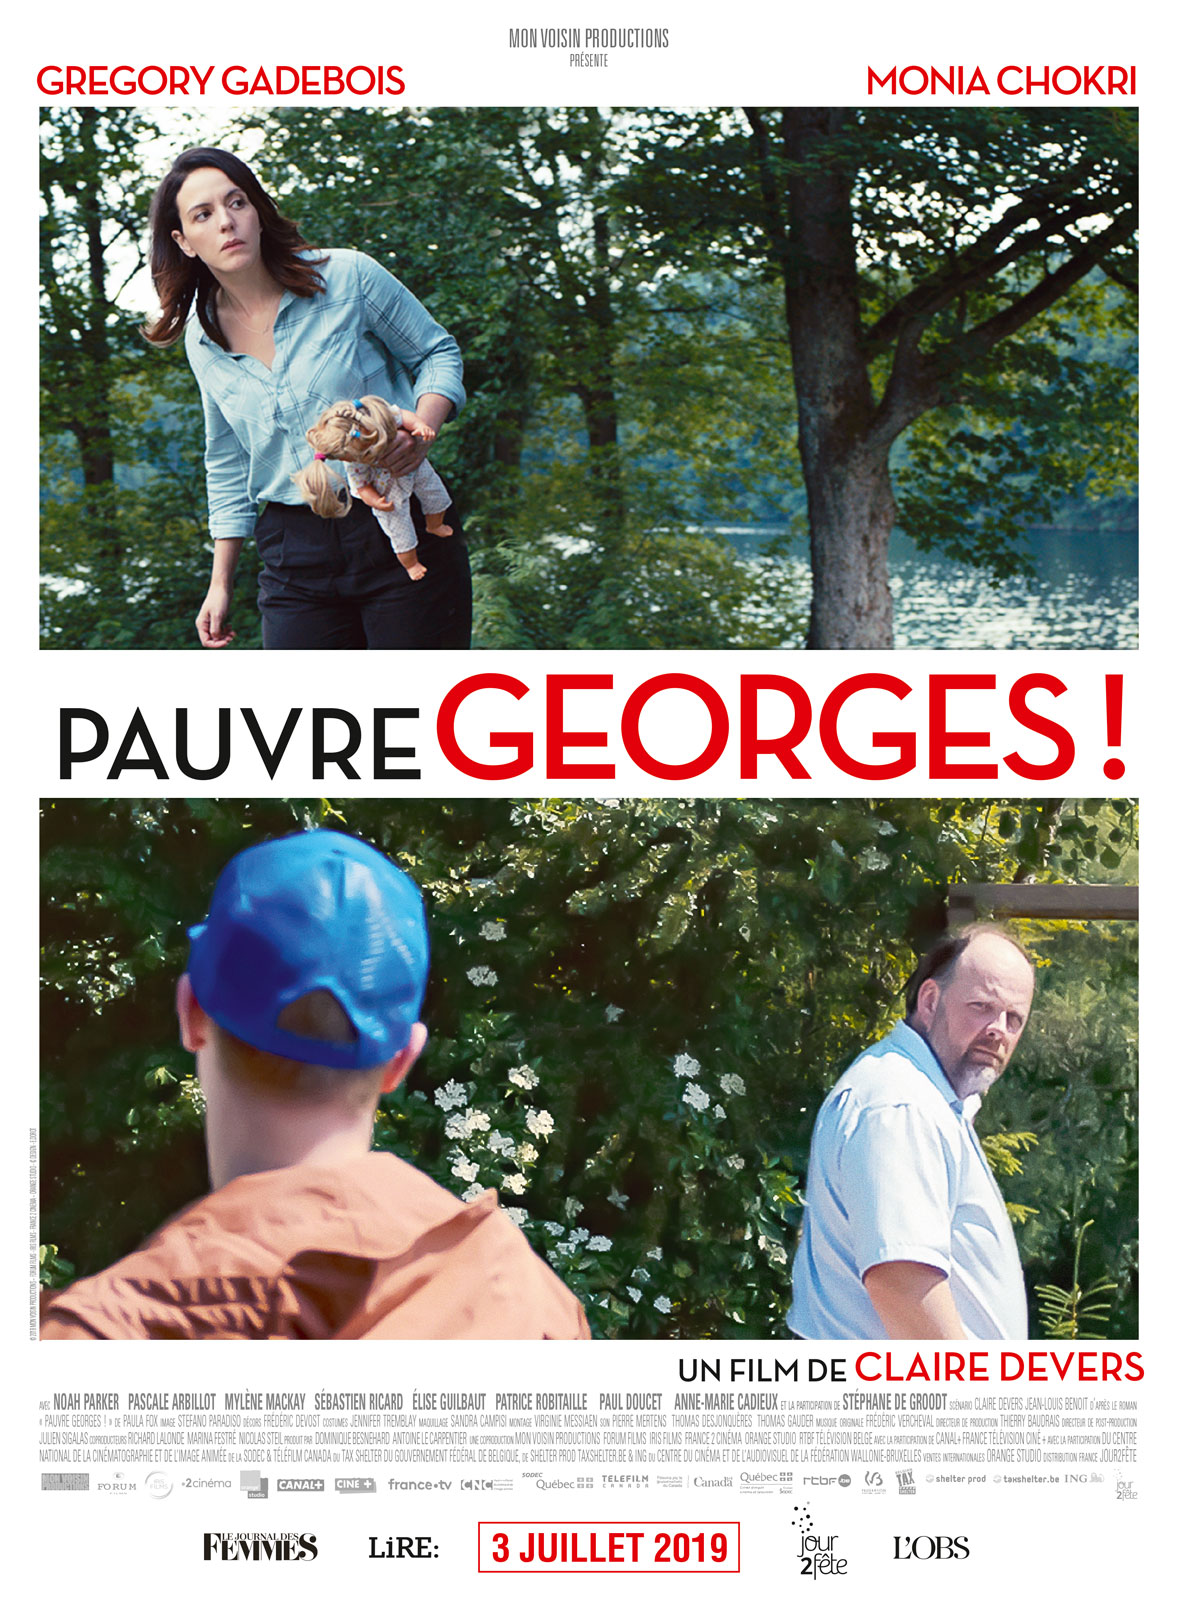 Pauvre Georges! (2018)